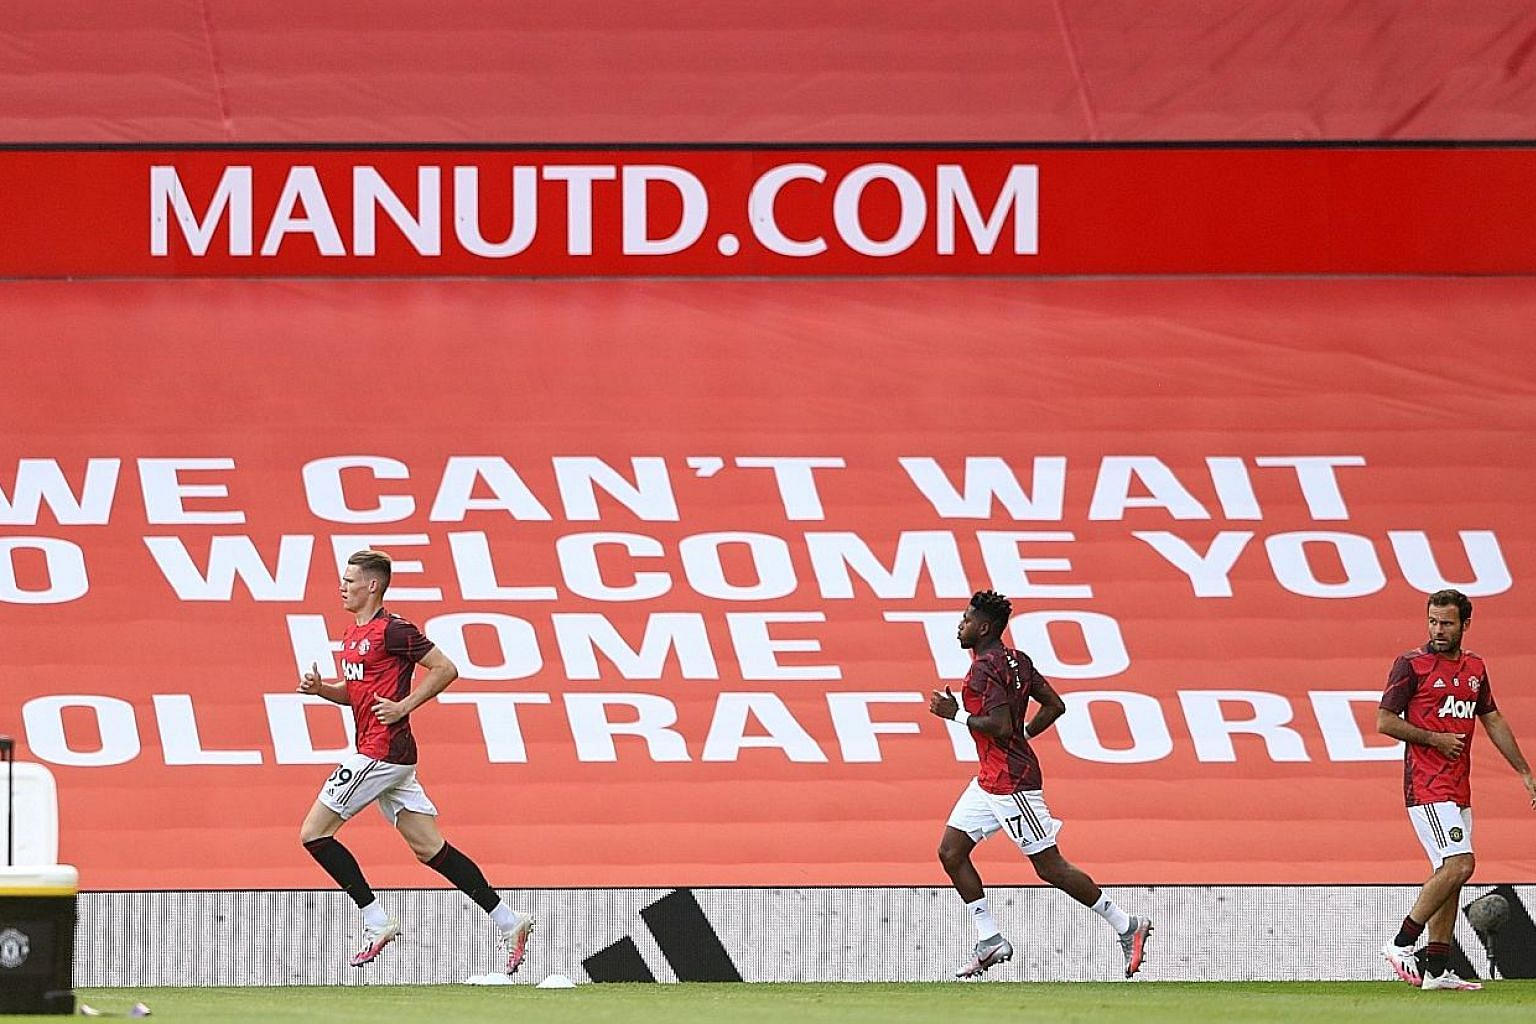 Manchester United players Scott McTominay, Fred and Juan Mata warming up for a match at Old Trafford. The Red Devils resume their push for a top-four place in the Premier League with an away game at Brighton today. PHOTO: REUTERS